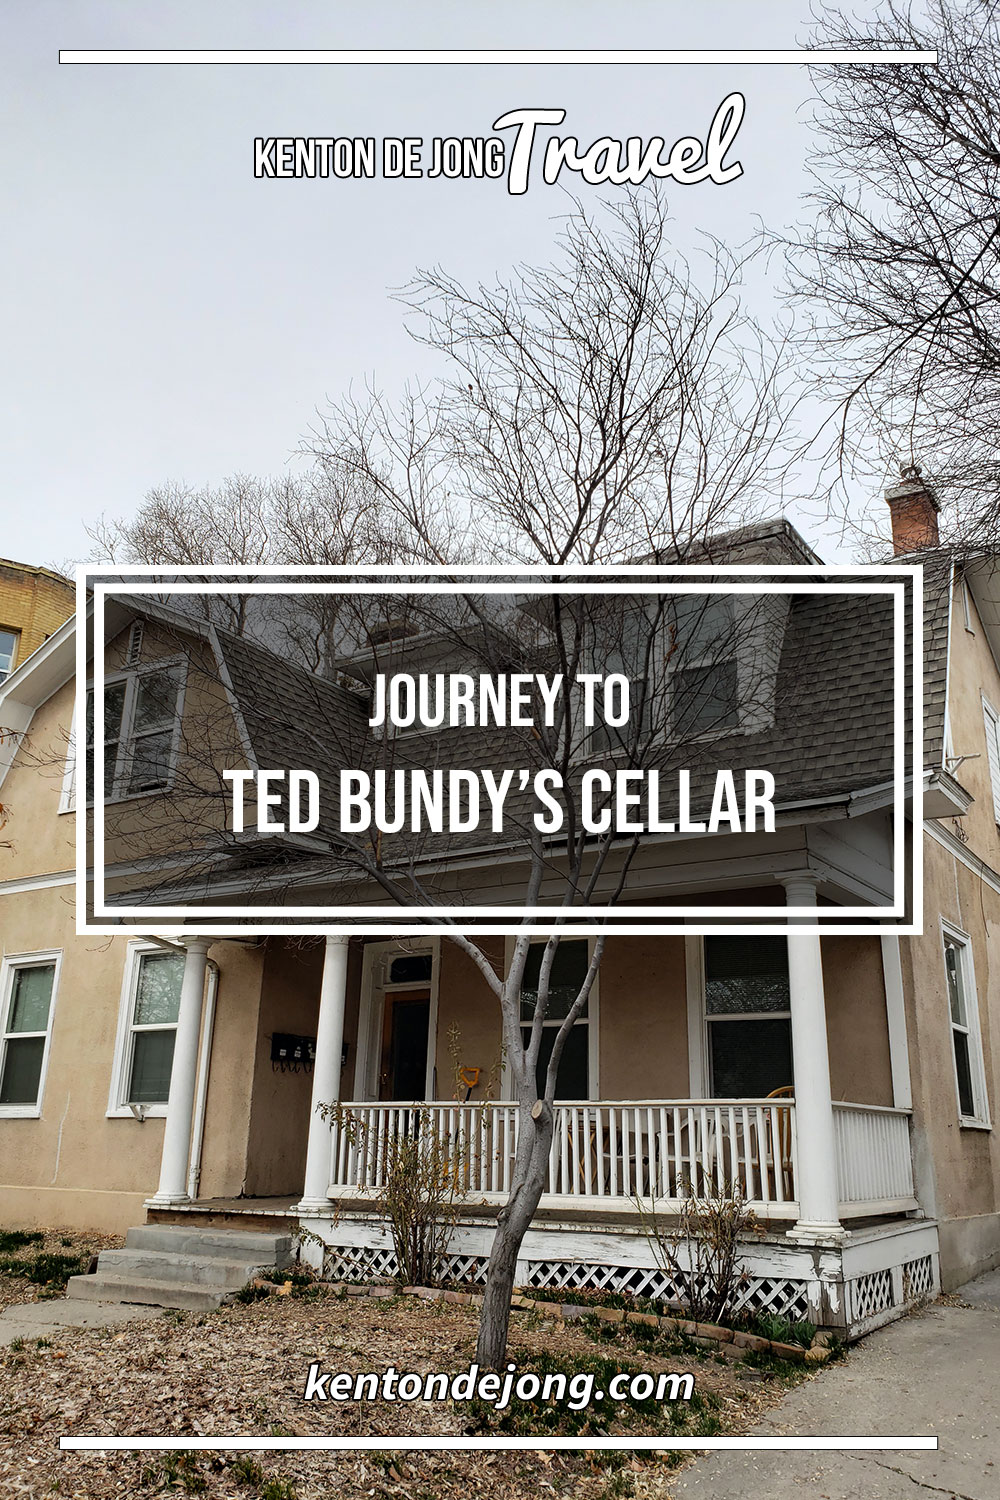 Journey to Ted Bundy's Cellar